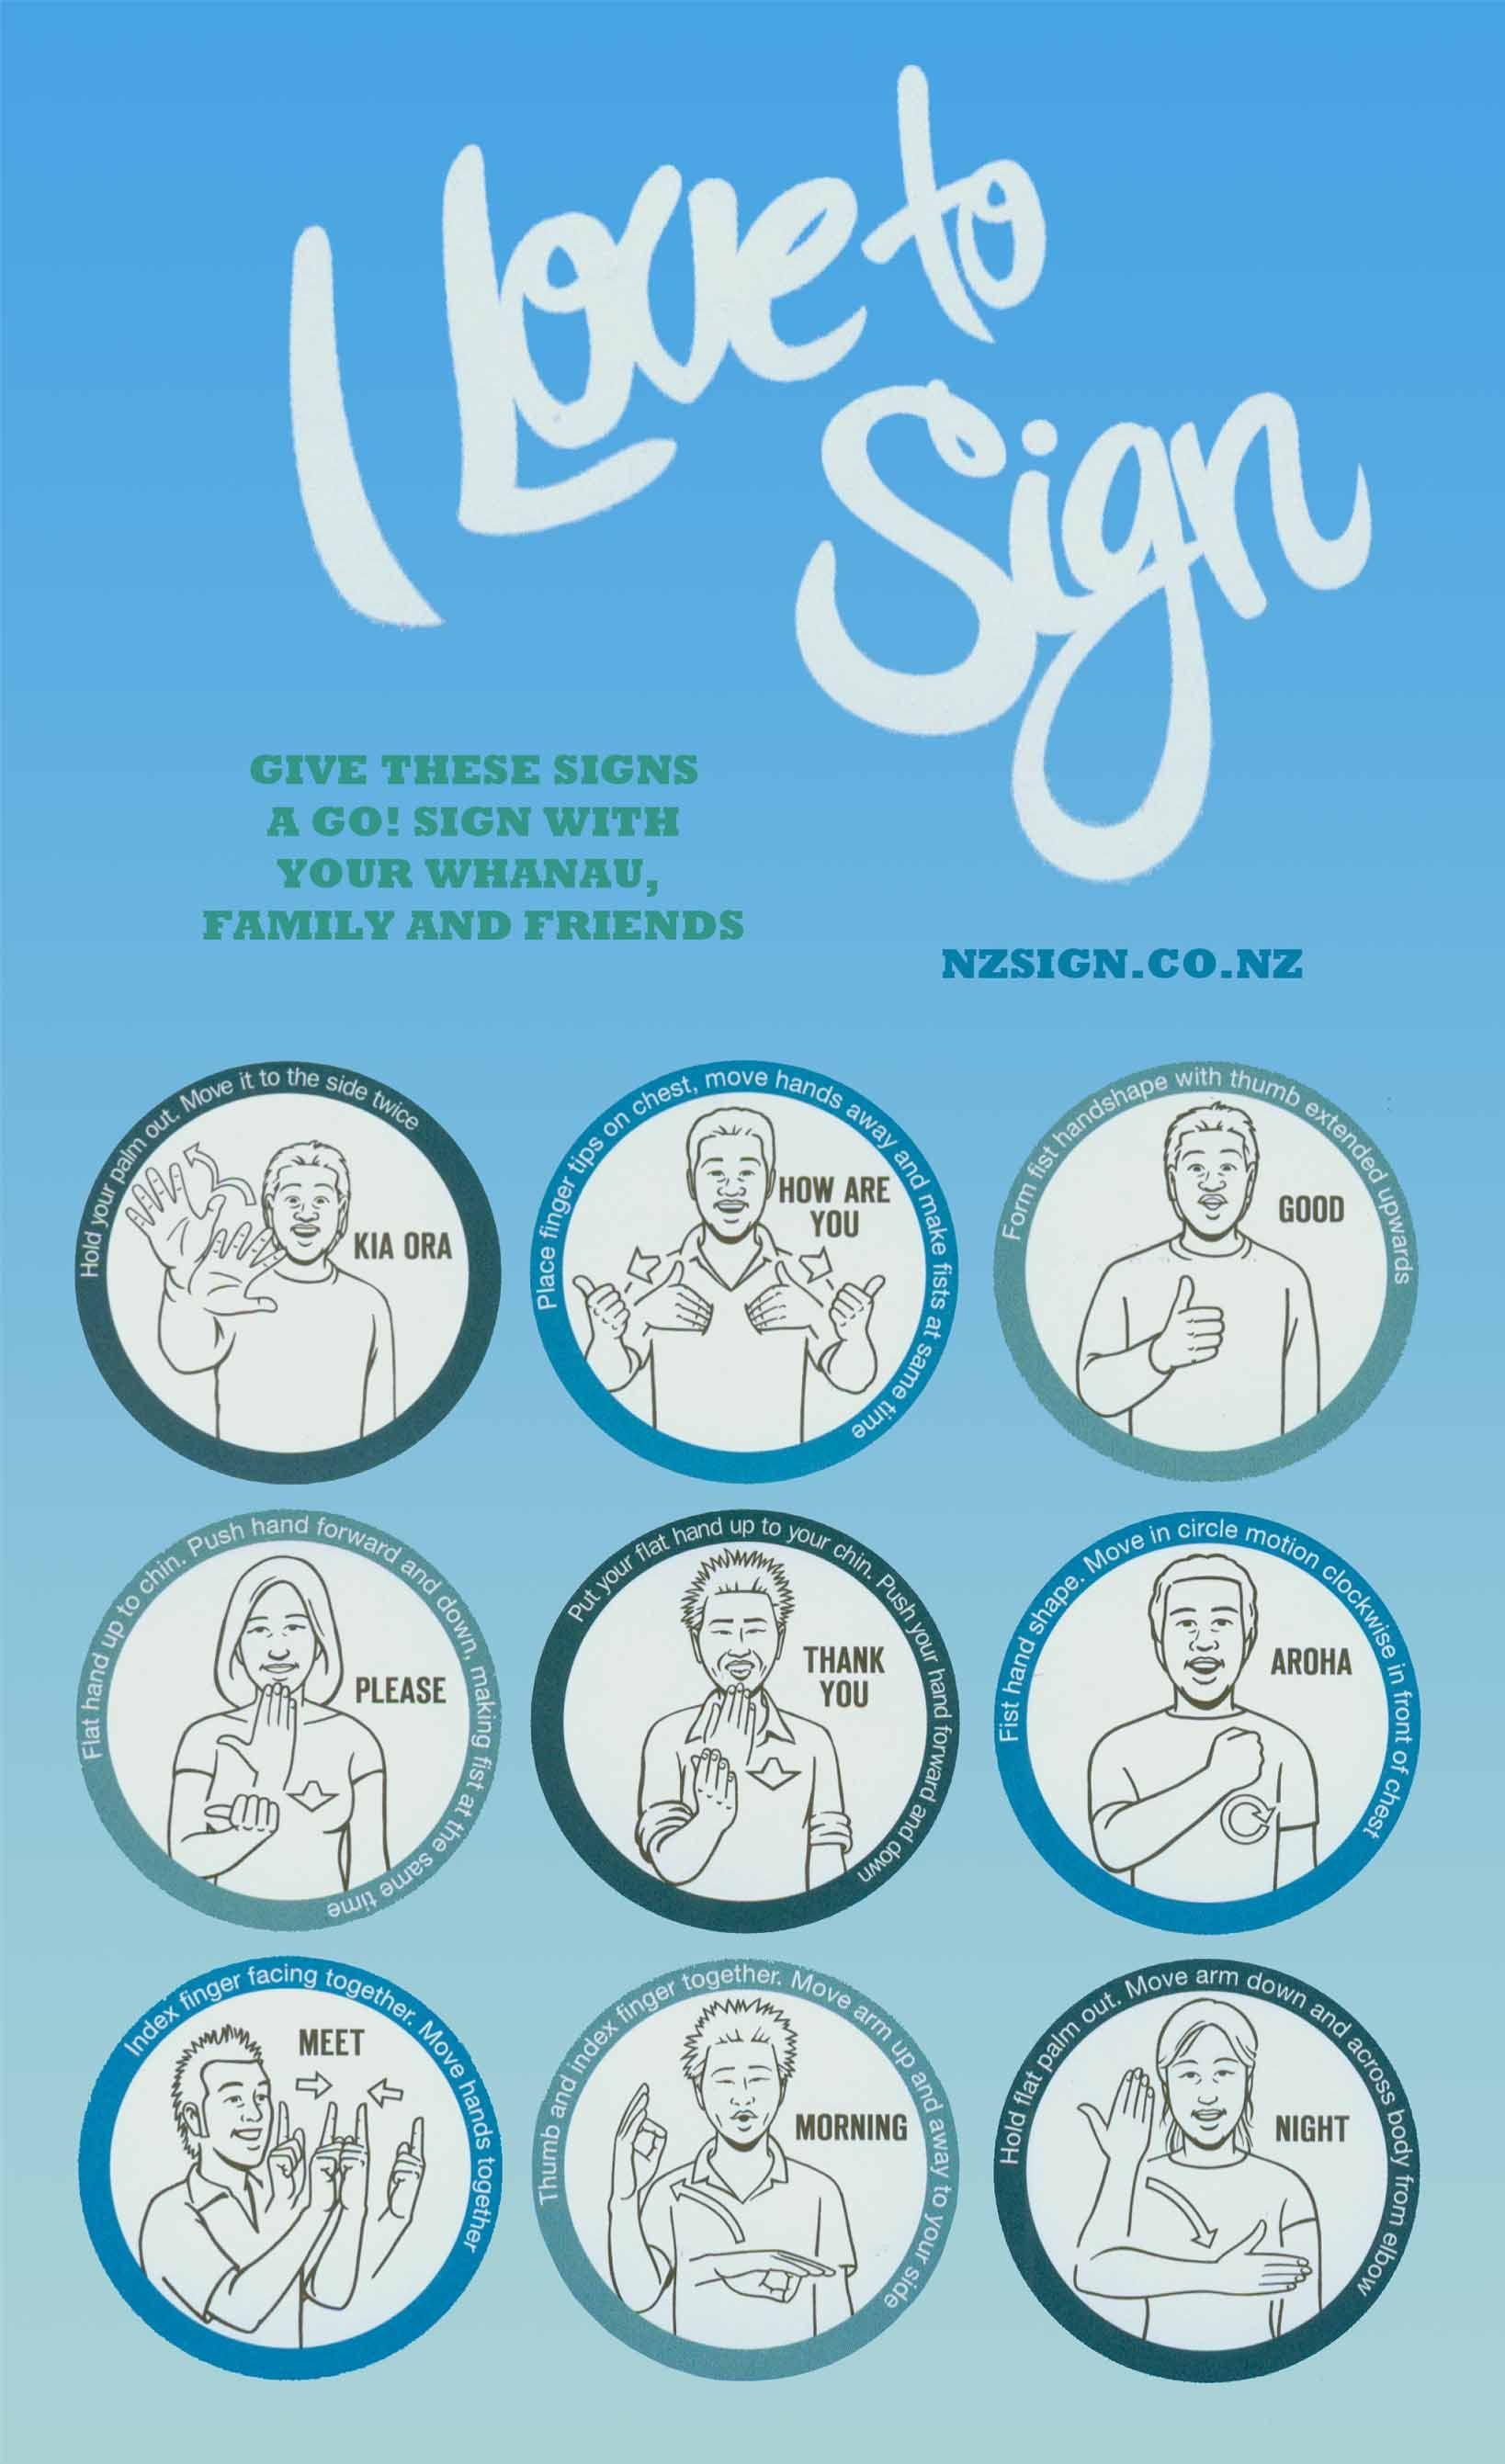 new zealand sign language colors - Google Search | ASL/Sign ...